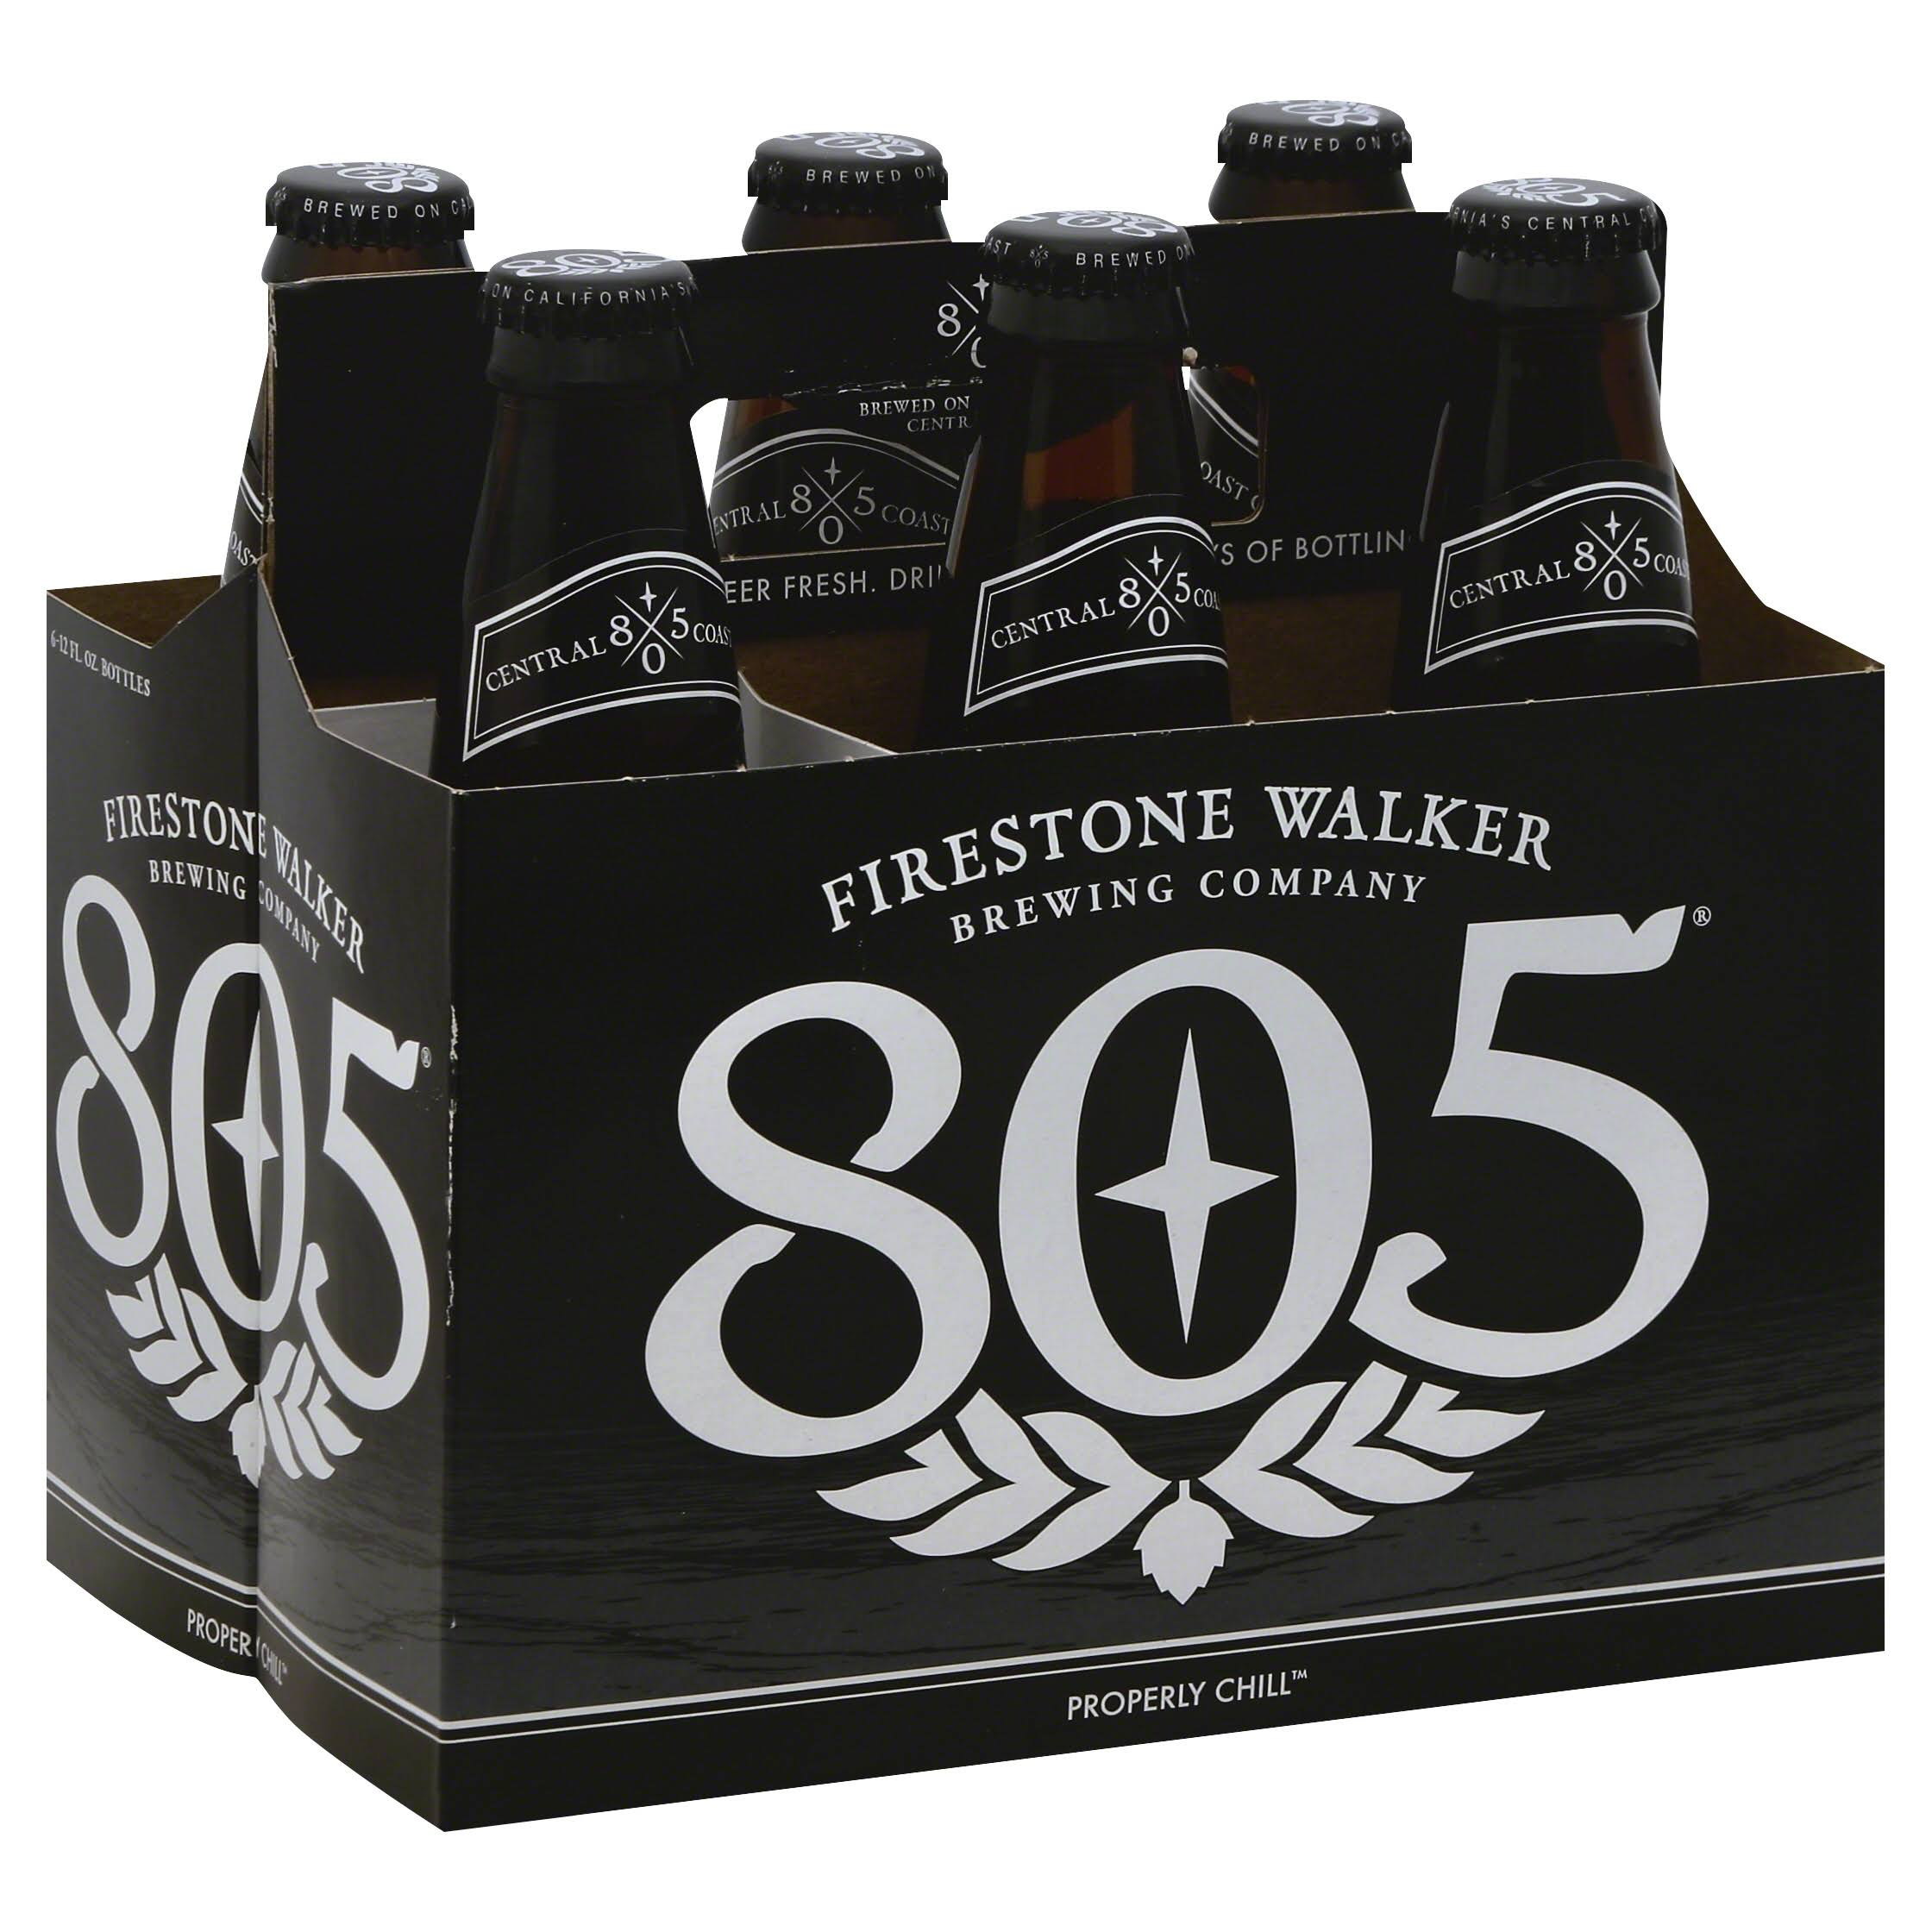 Firestone Walker Beer, 805 - 6 pack, 12 fl oz bottles